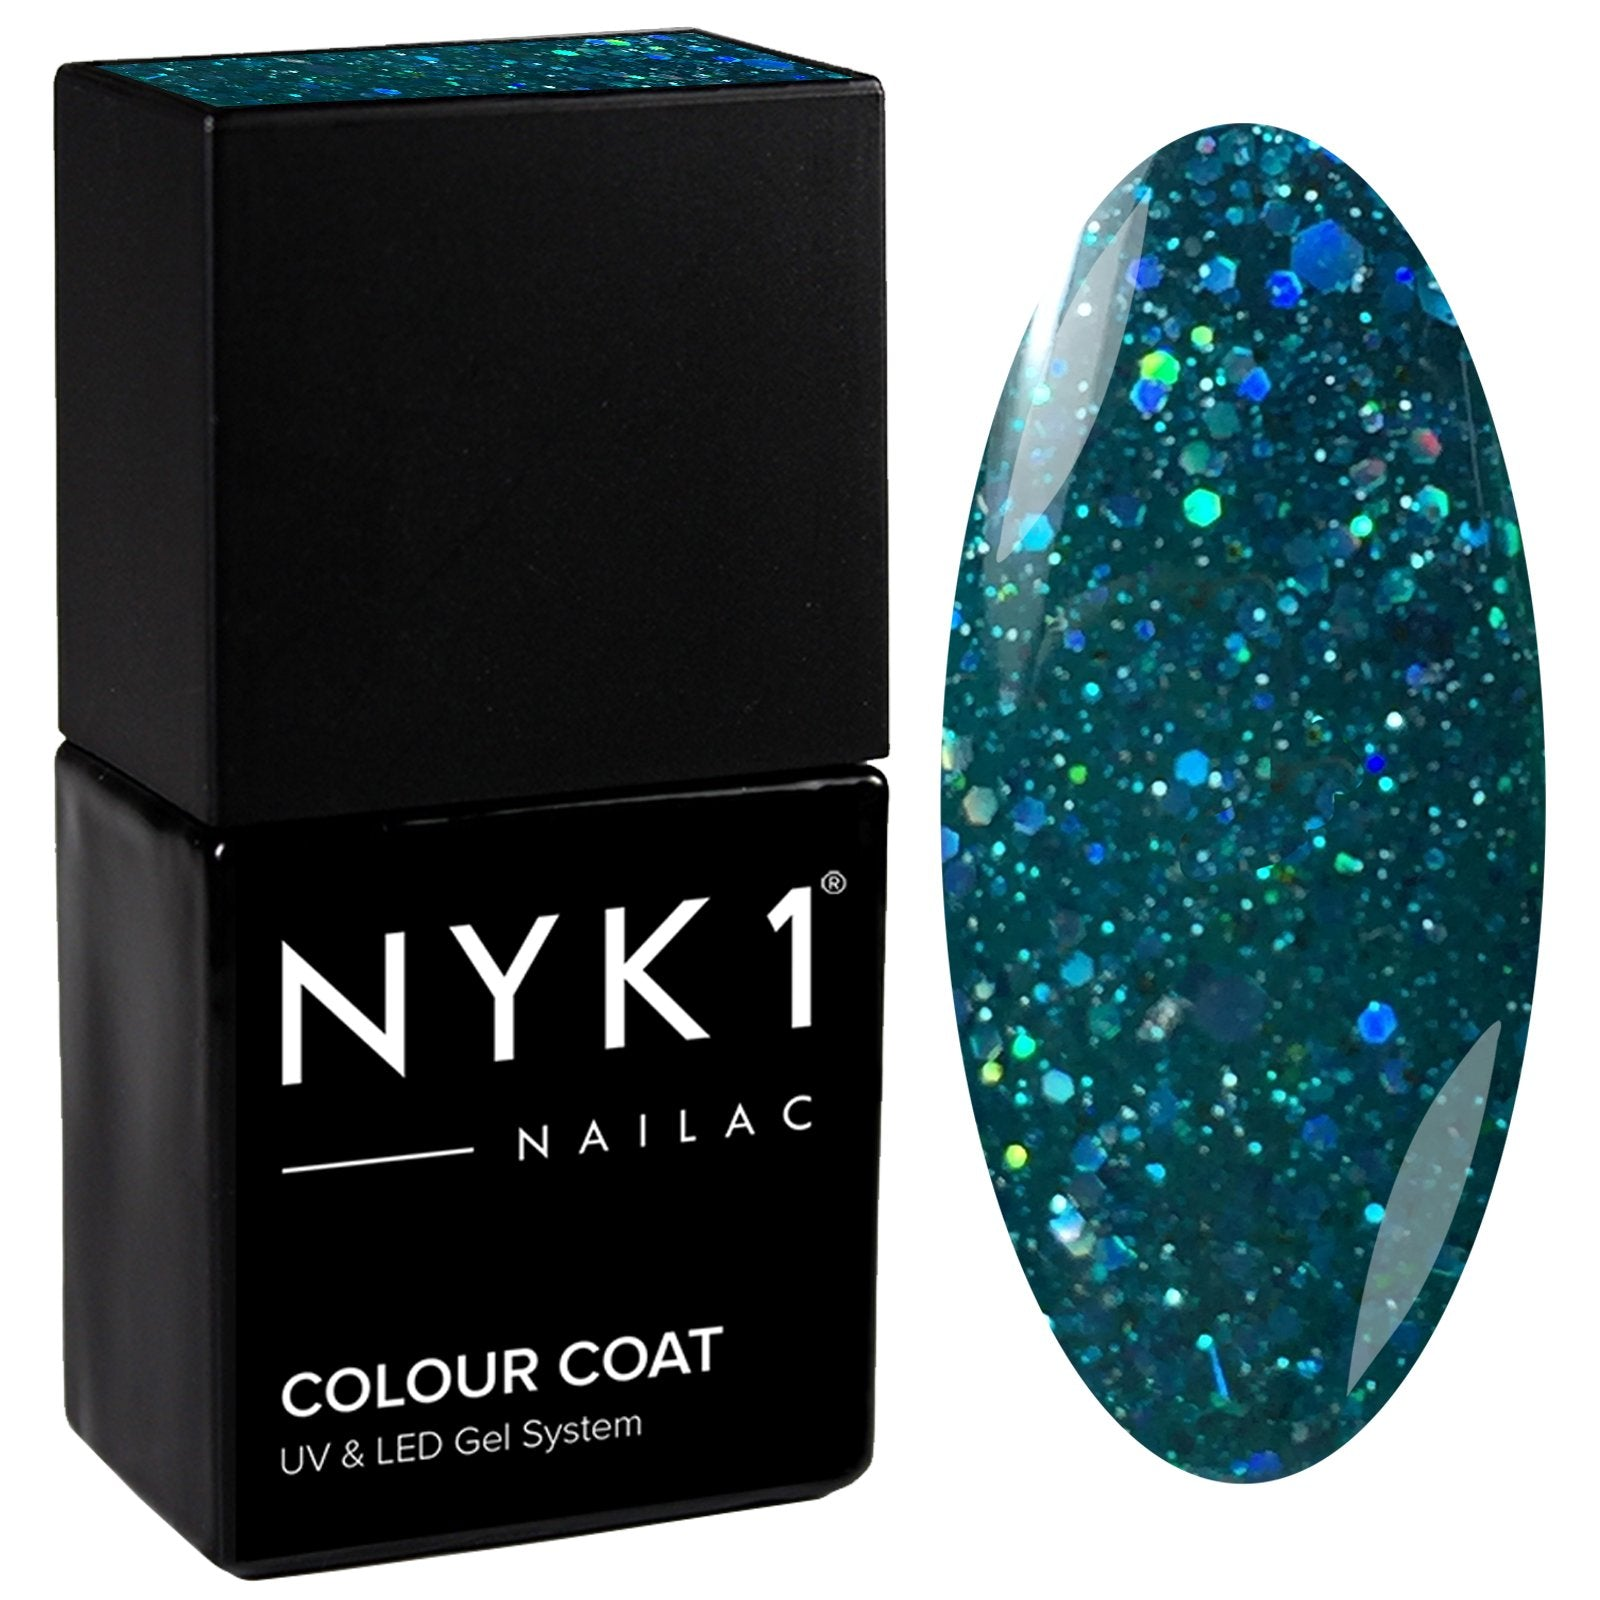 NYK1 Diamond Emerald Green Gel Nail Polish